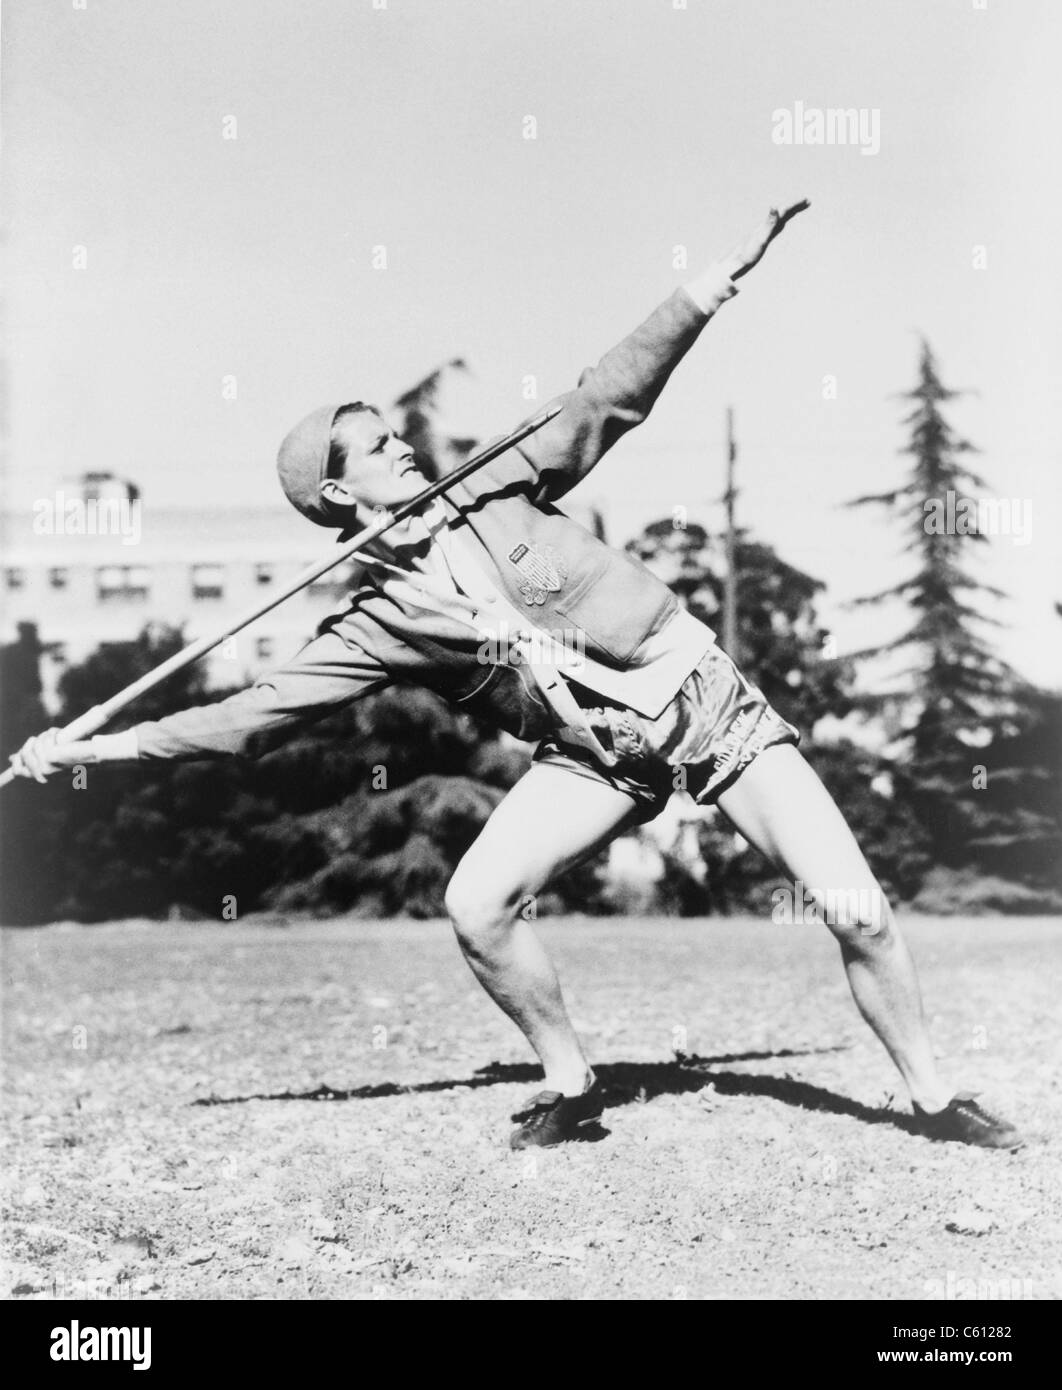 Mildred 'Babe' Didrikson, (1911-1956), winding up for javelin toss at the 1932 Olympics at Los Angeles. - Stock Image